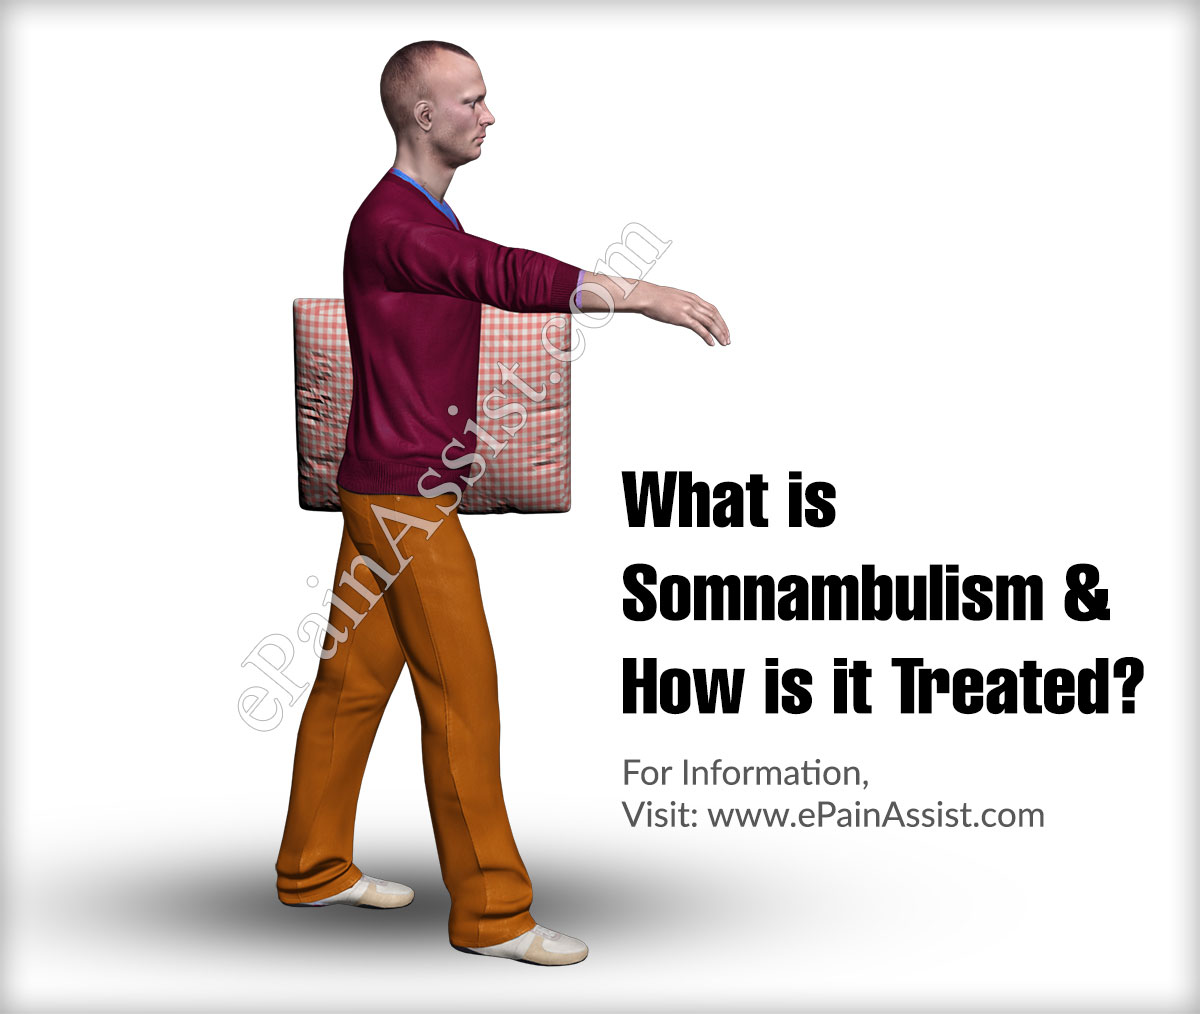 What is Somnambulism  & How is it Treated?